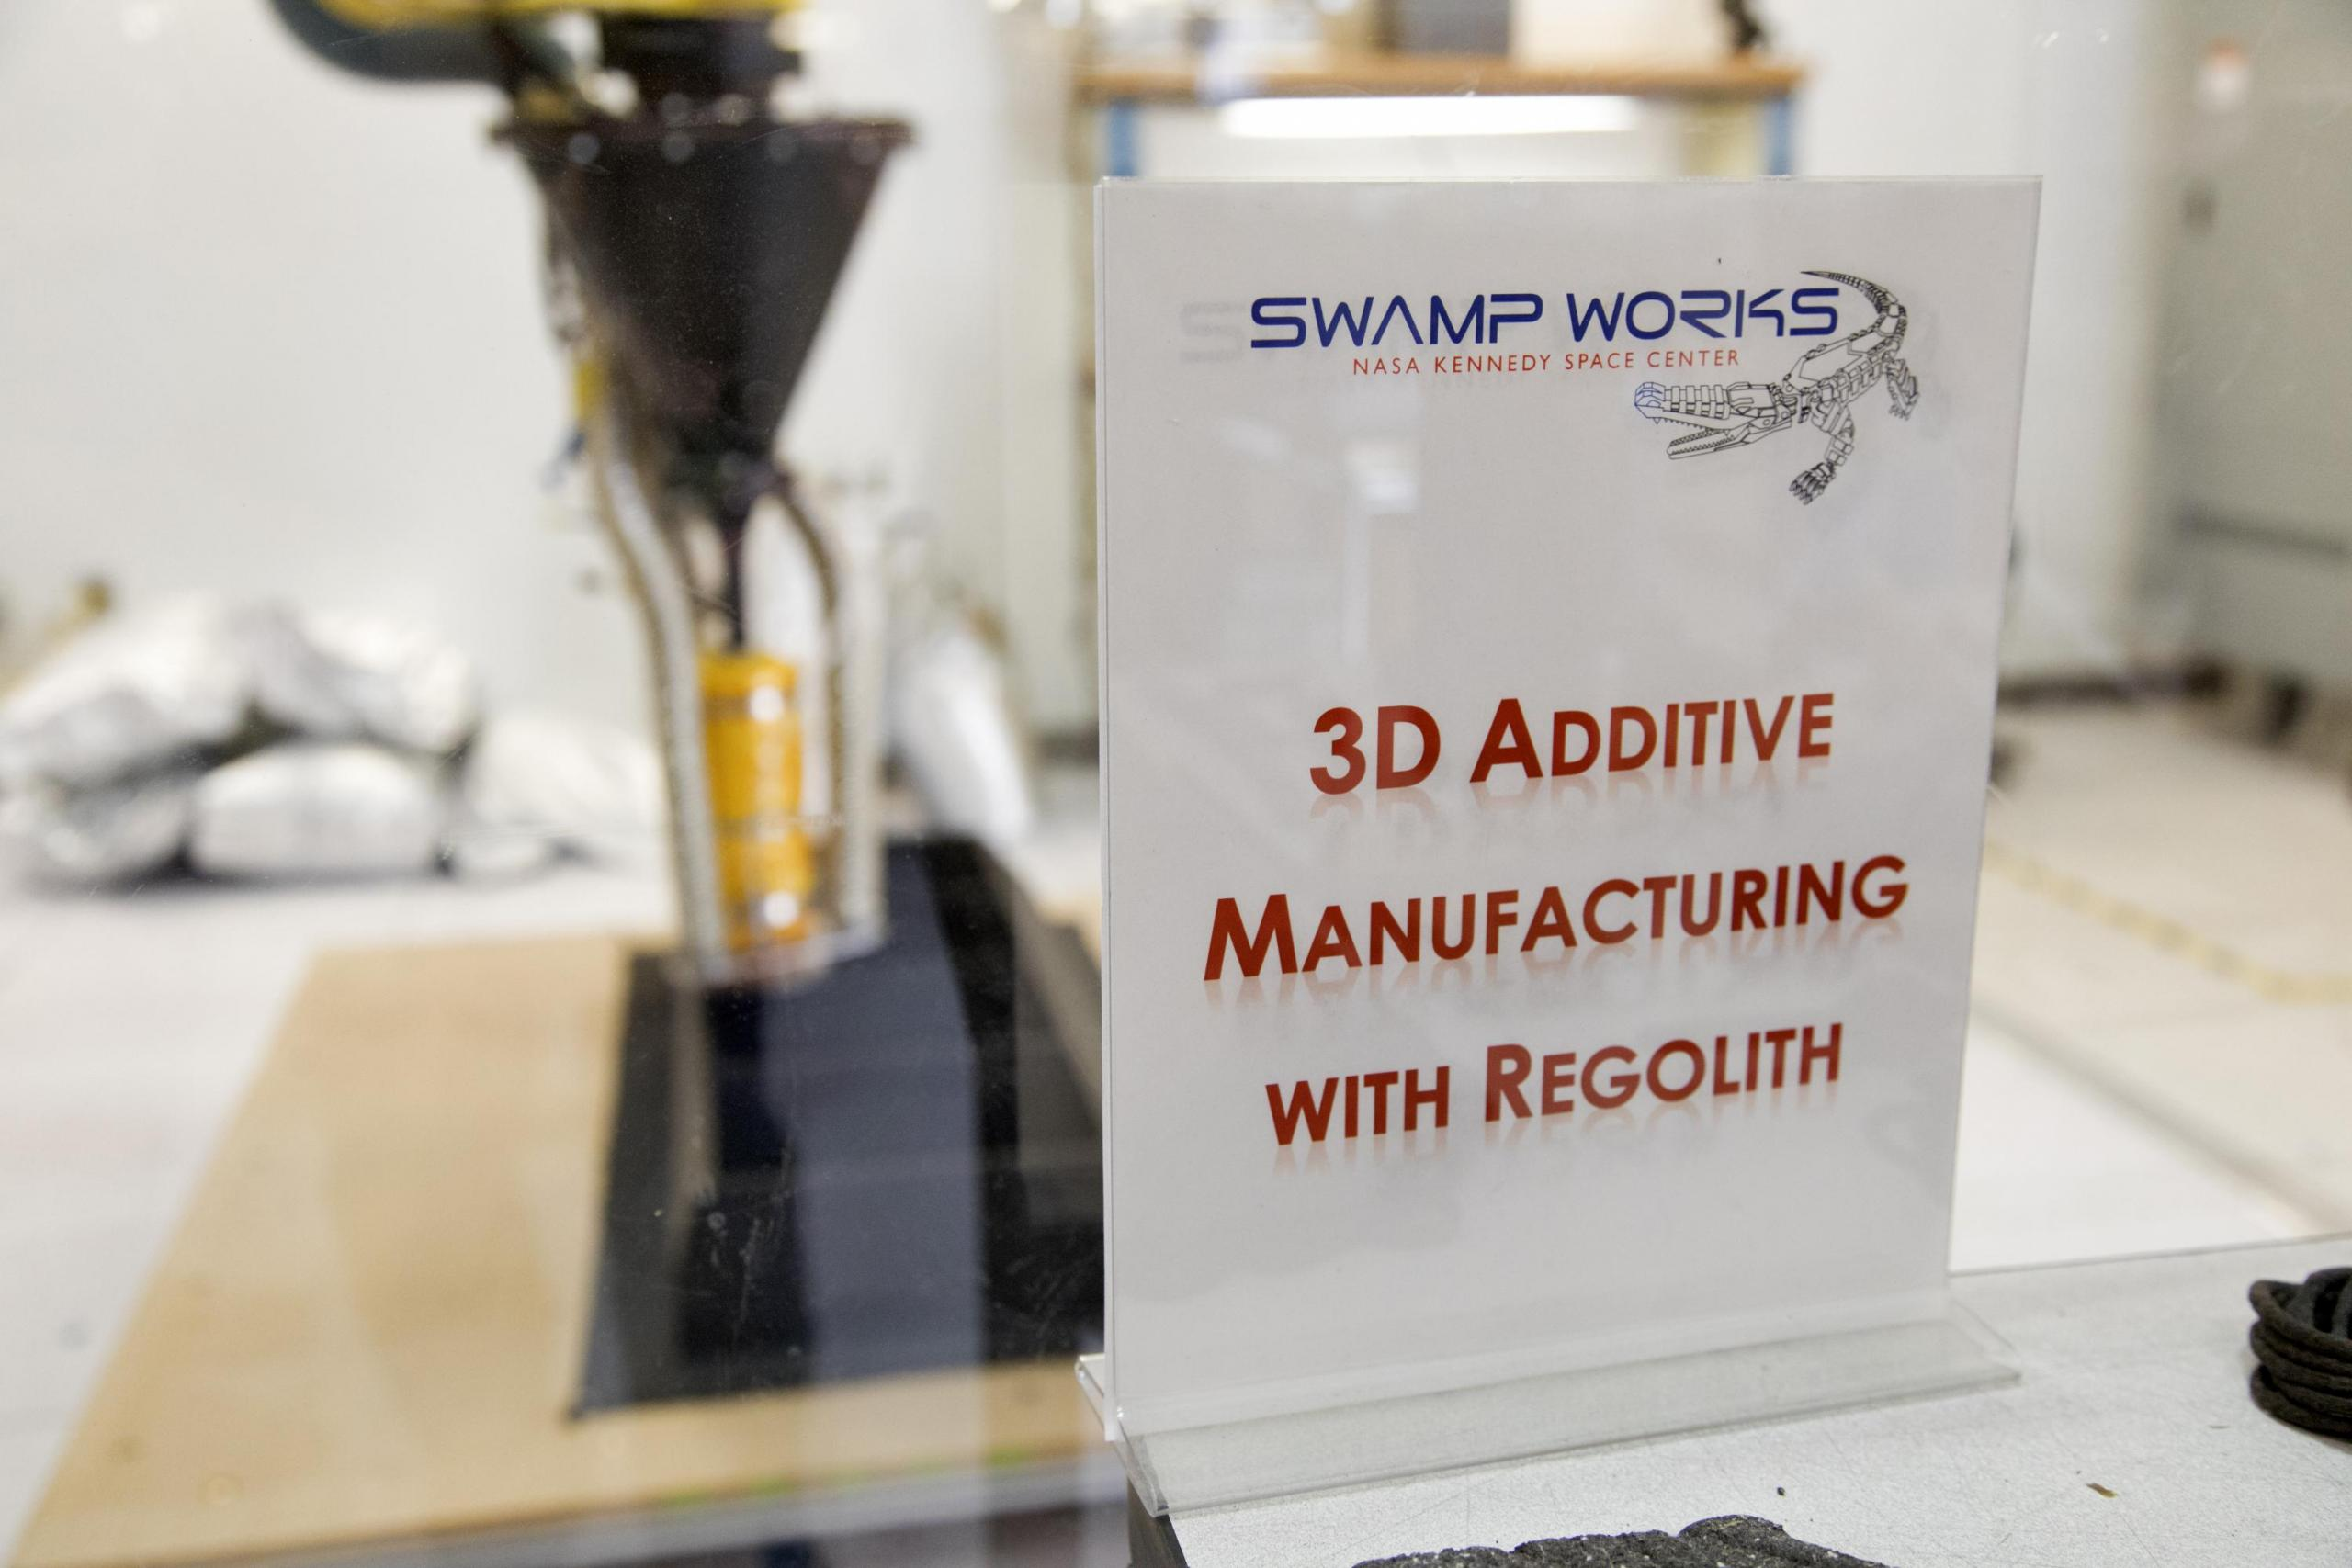 The 3-D printer used to make things out of lunar dust (regolith) at the Kennedy Space Center.  Additive manufacturing is another name for 3-D printing.